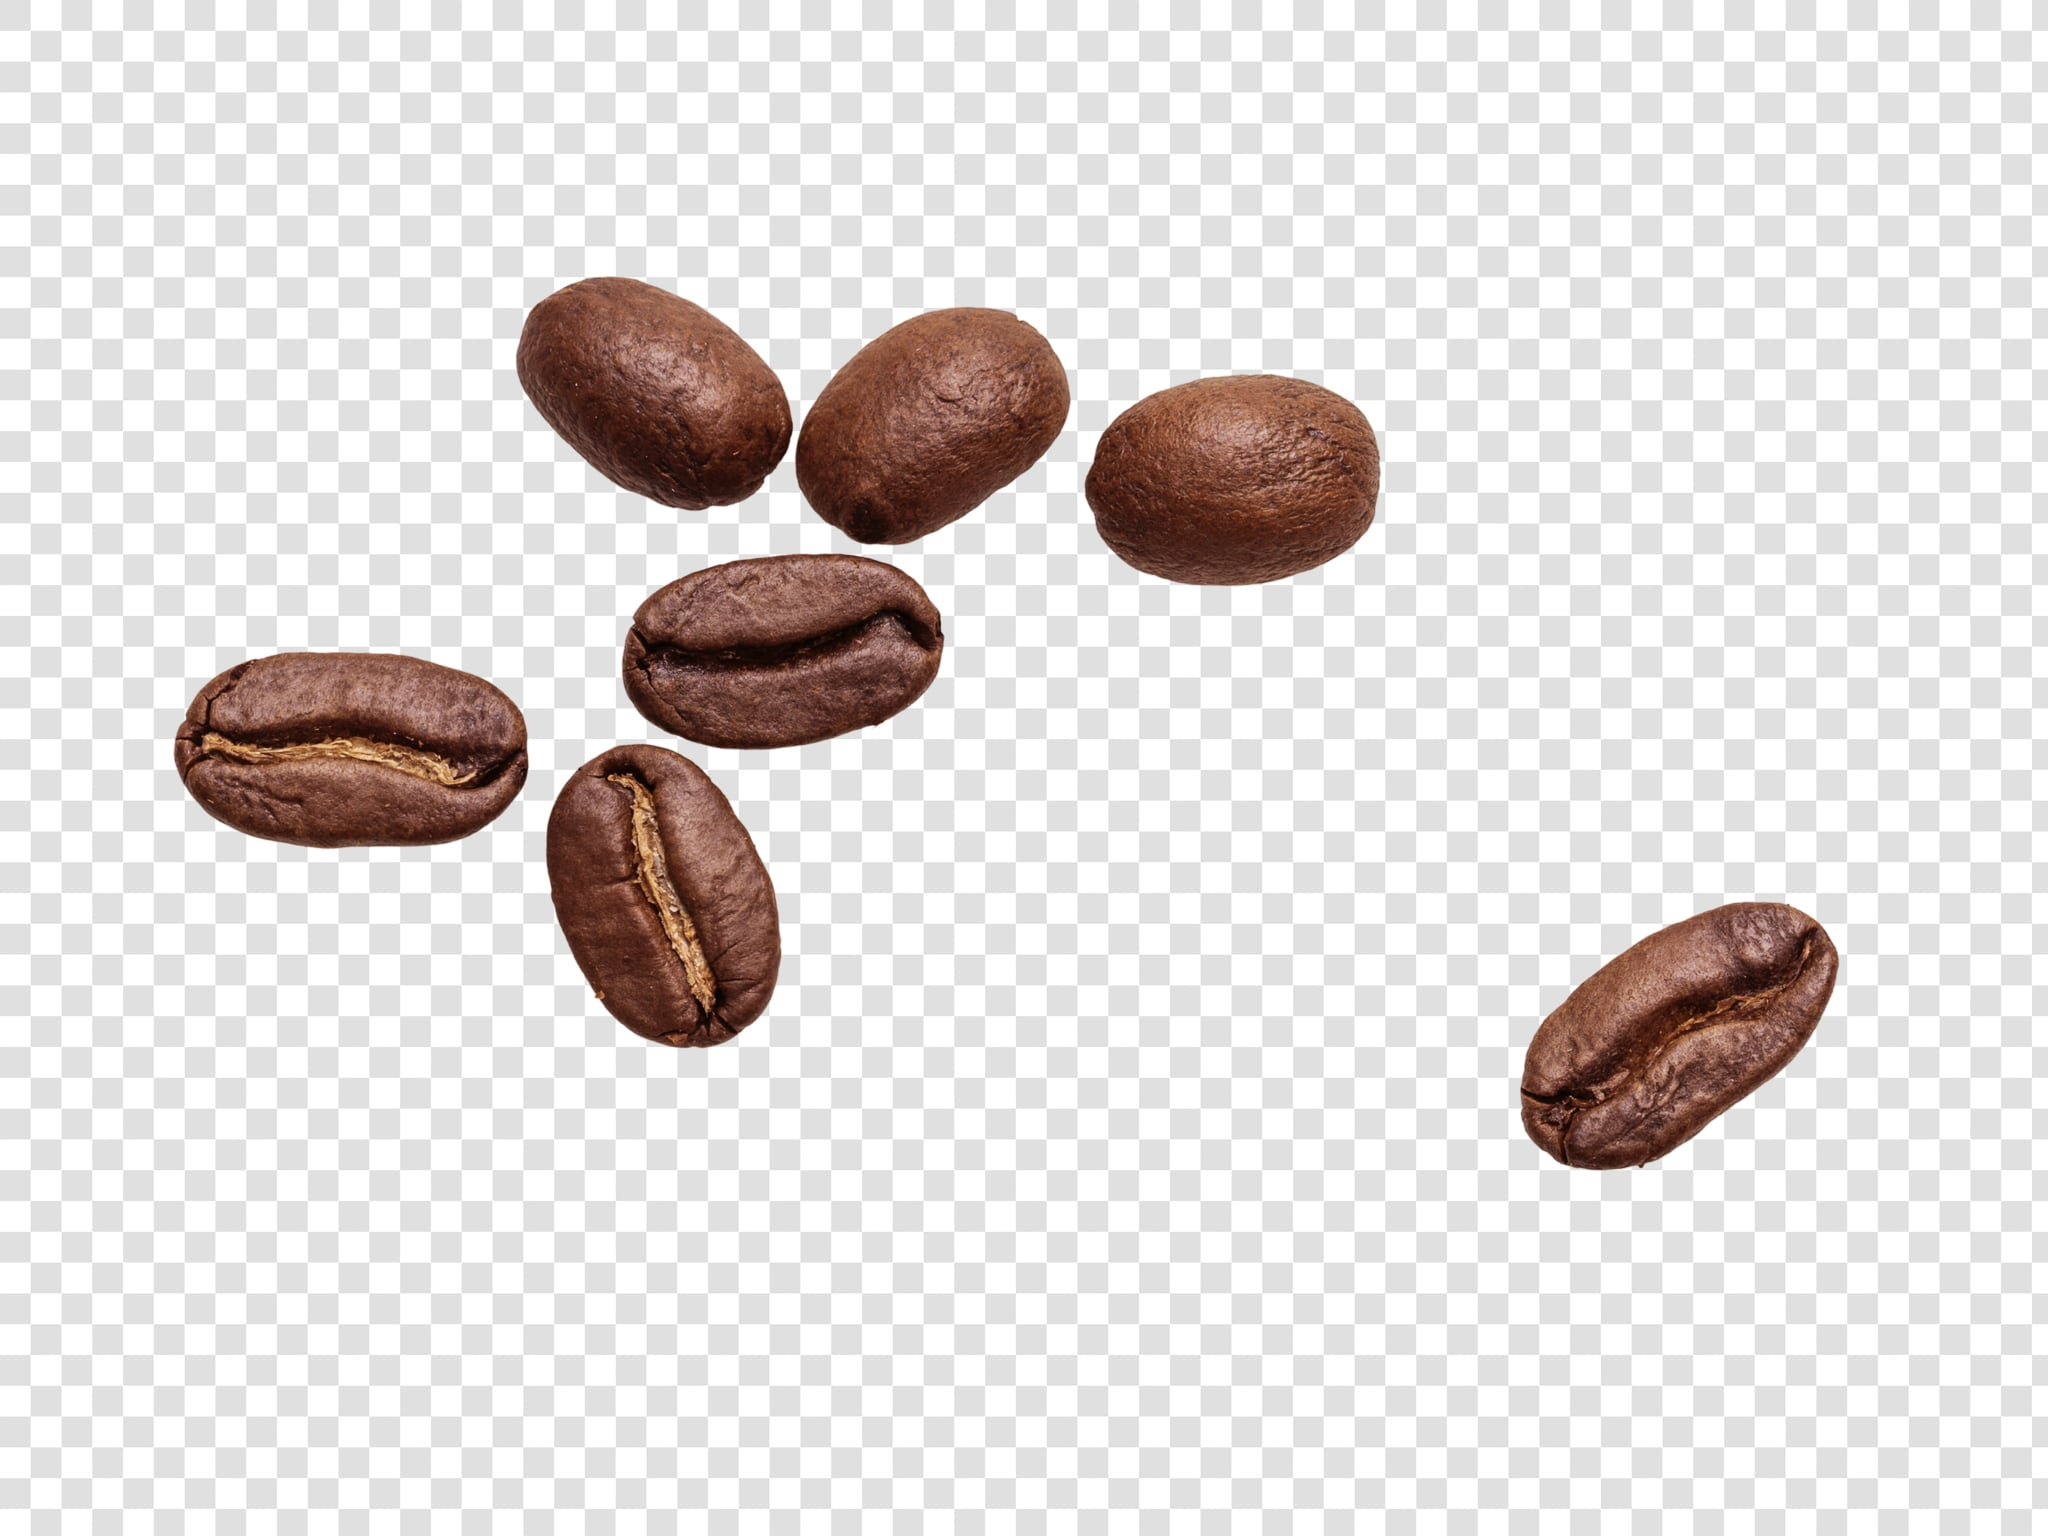 Coffee PSD isolated image